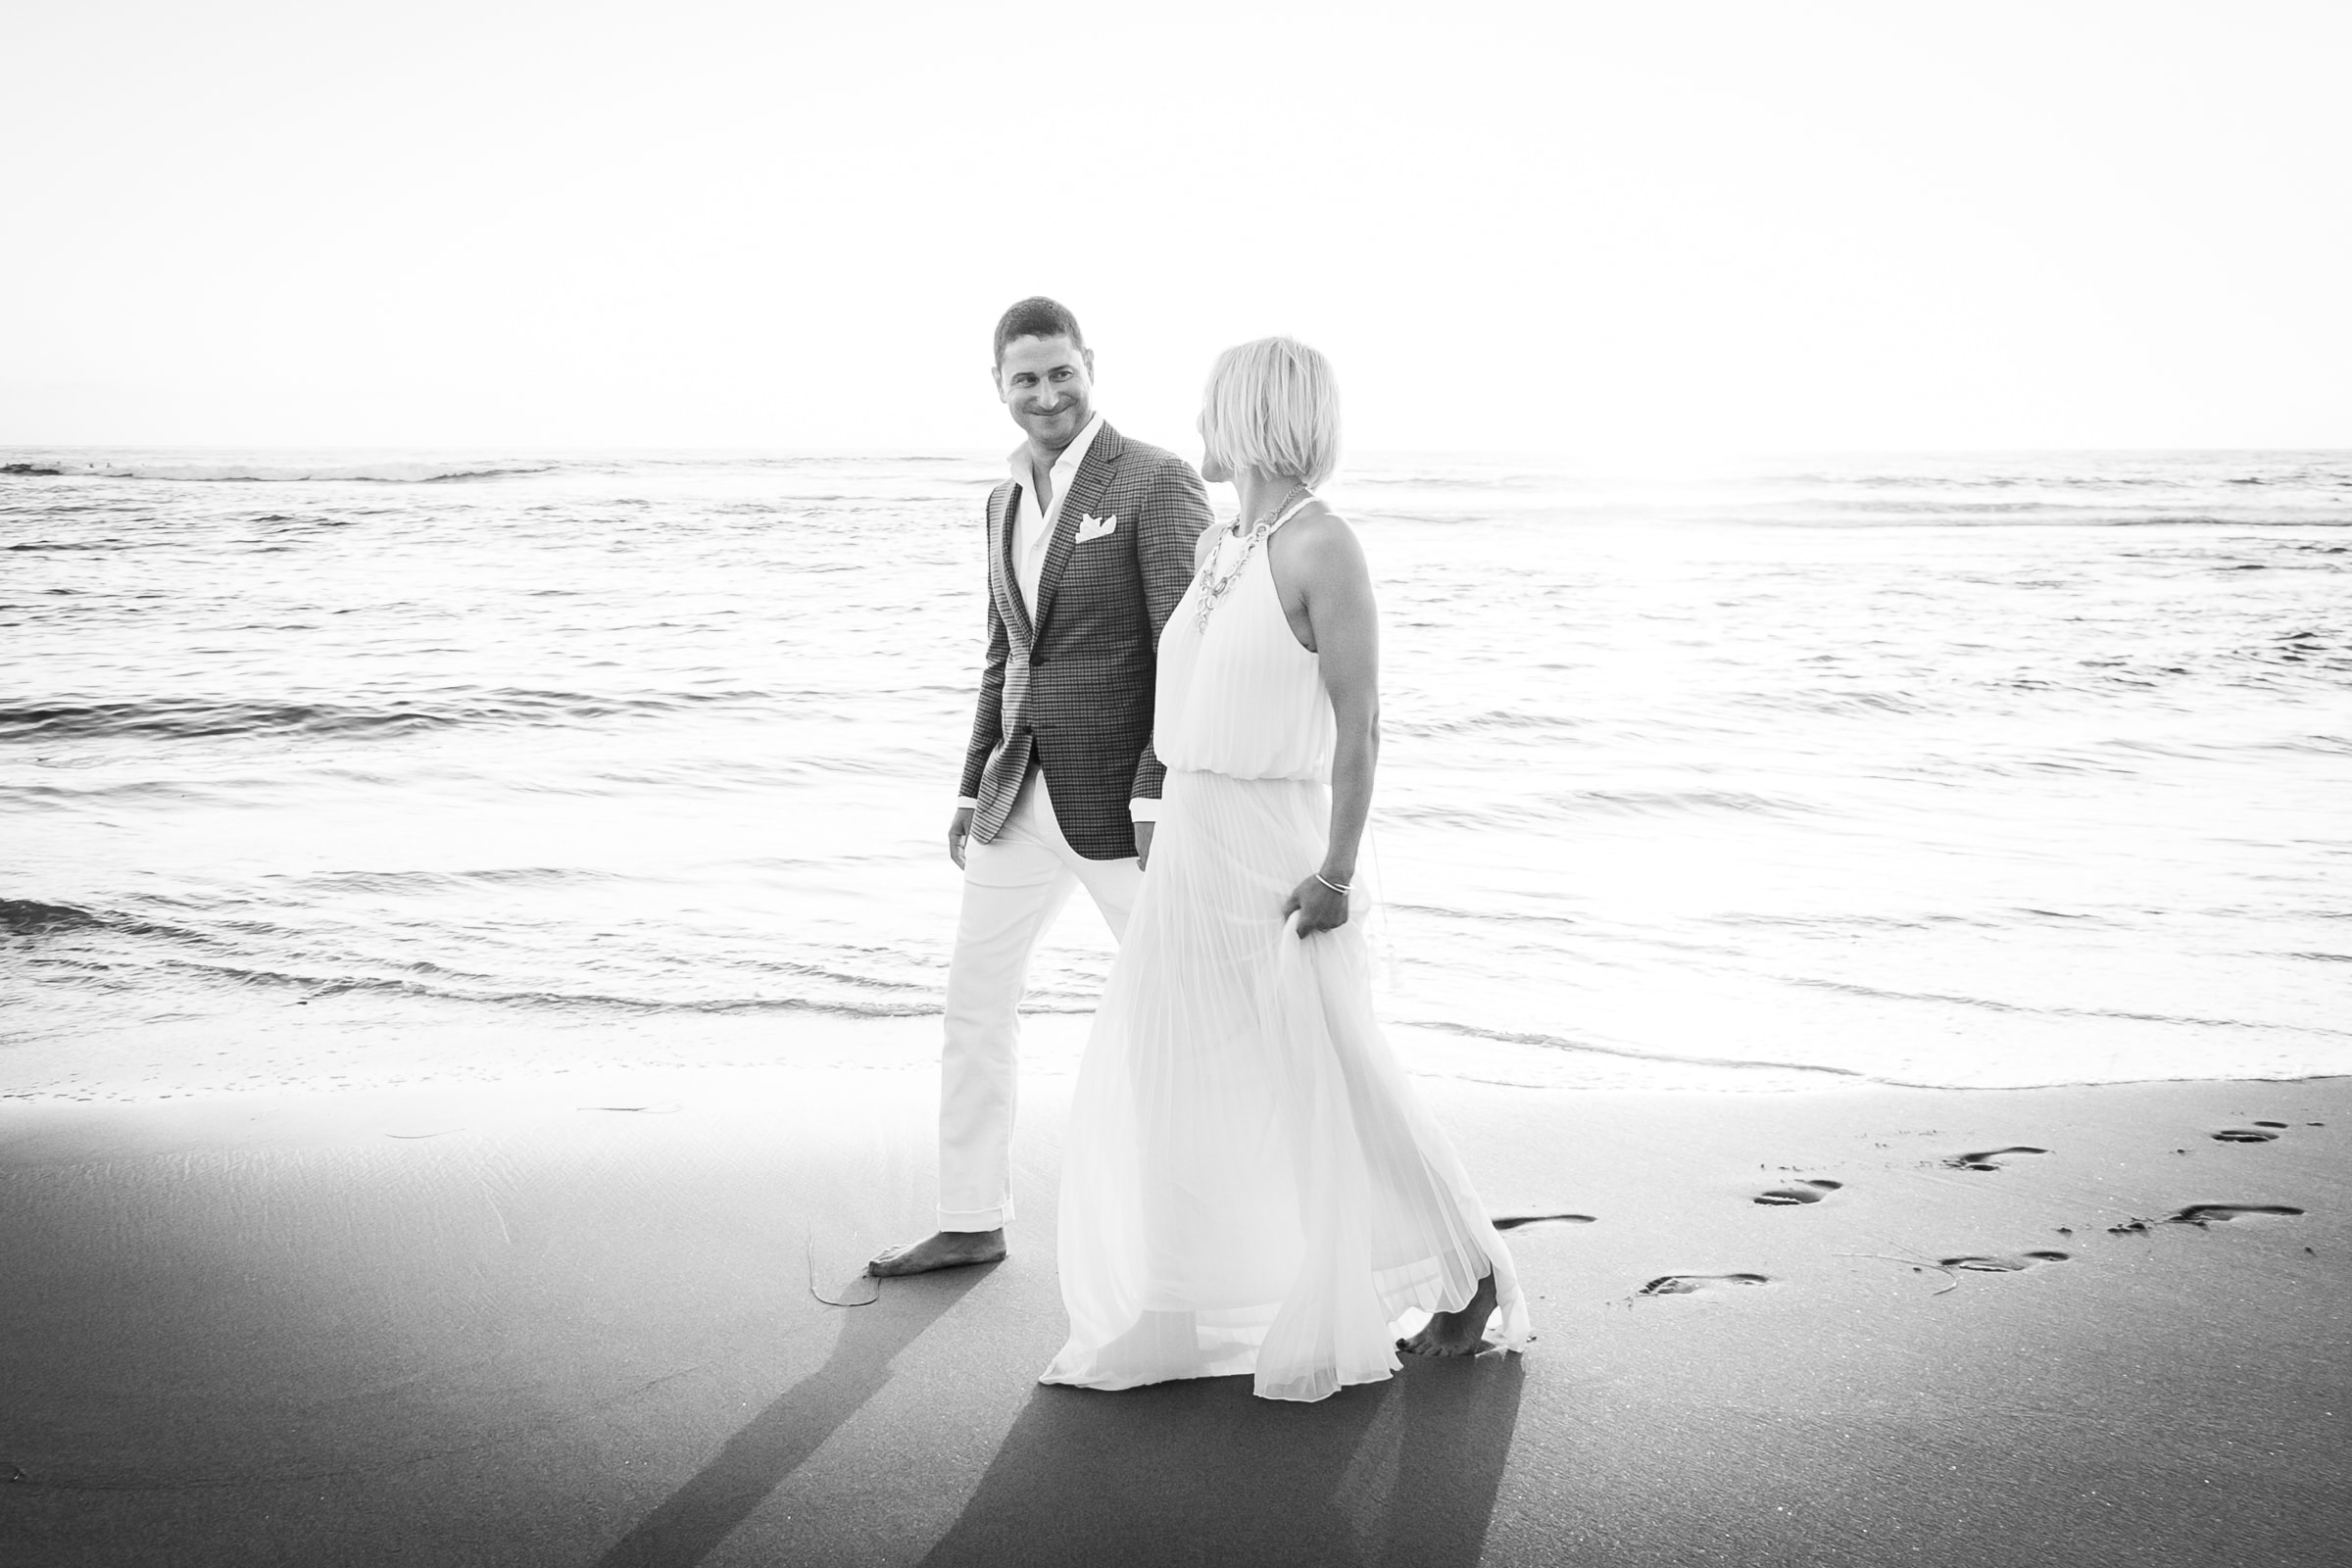 la-jolla-beach-wedding-5